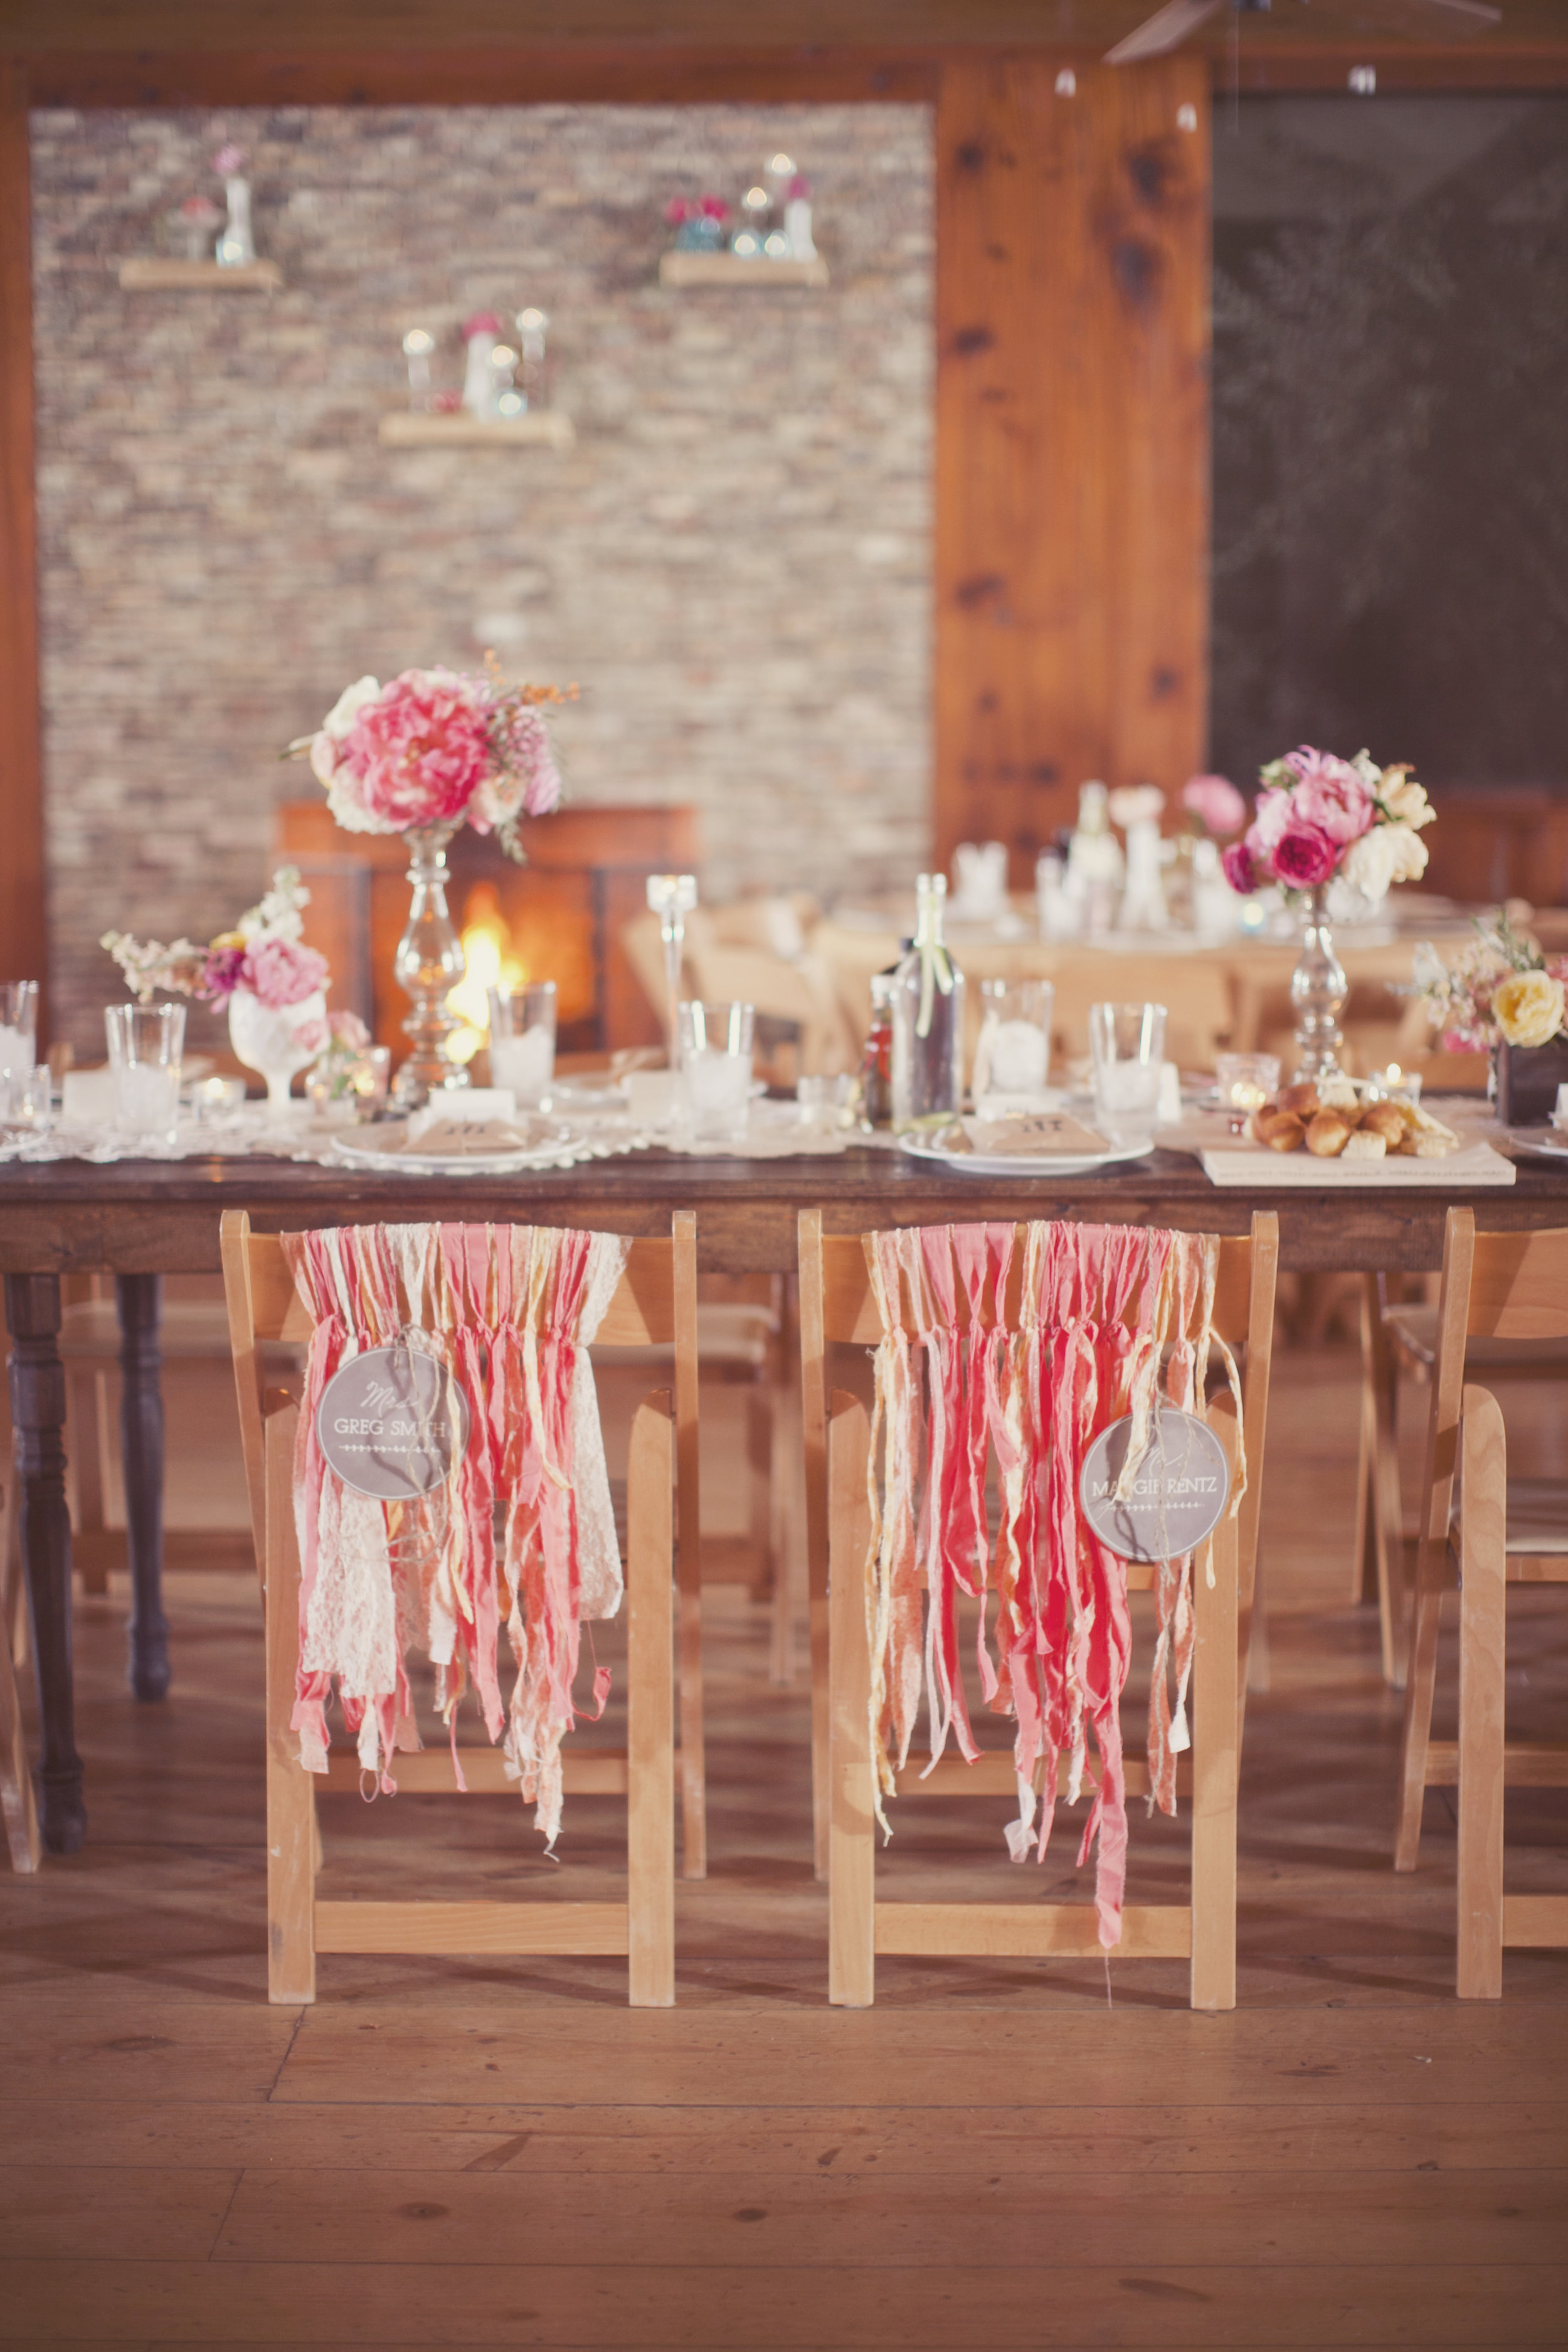 Simply-Charming-Socials_Atlanta-Wedding-Planner_Our-Labor-Of-Love_Maggie-and-Greg_30.jpg